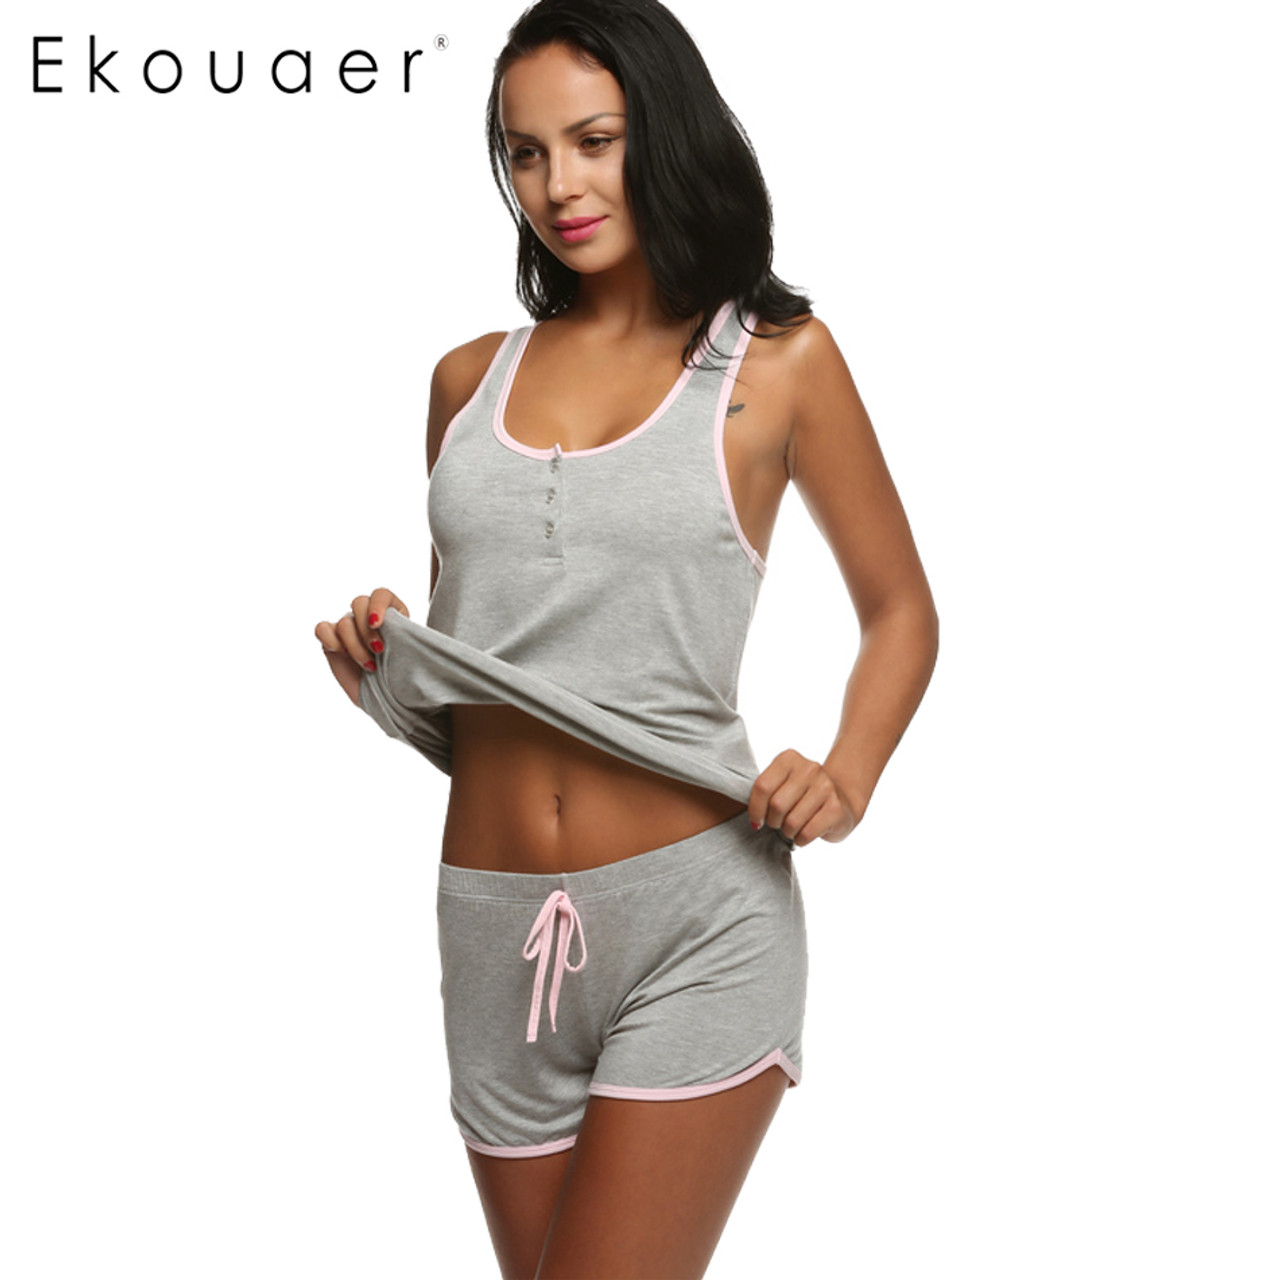 5450d20e1cf3 Ekouaer Women Short Sexy Pajamas Tank and Camisole Cami Set New Spring and  Summer Home Furnishing clothing Cotton Nightwear Suit - OnshopDeals.Com